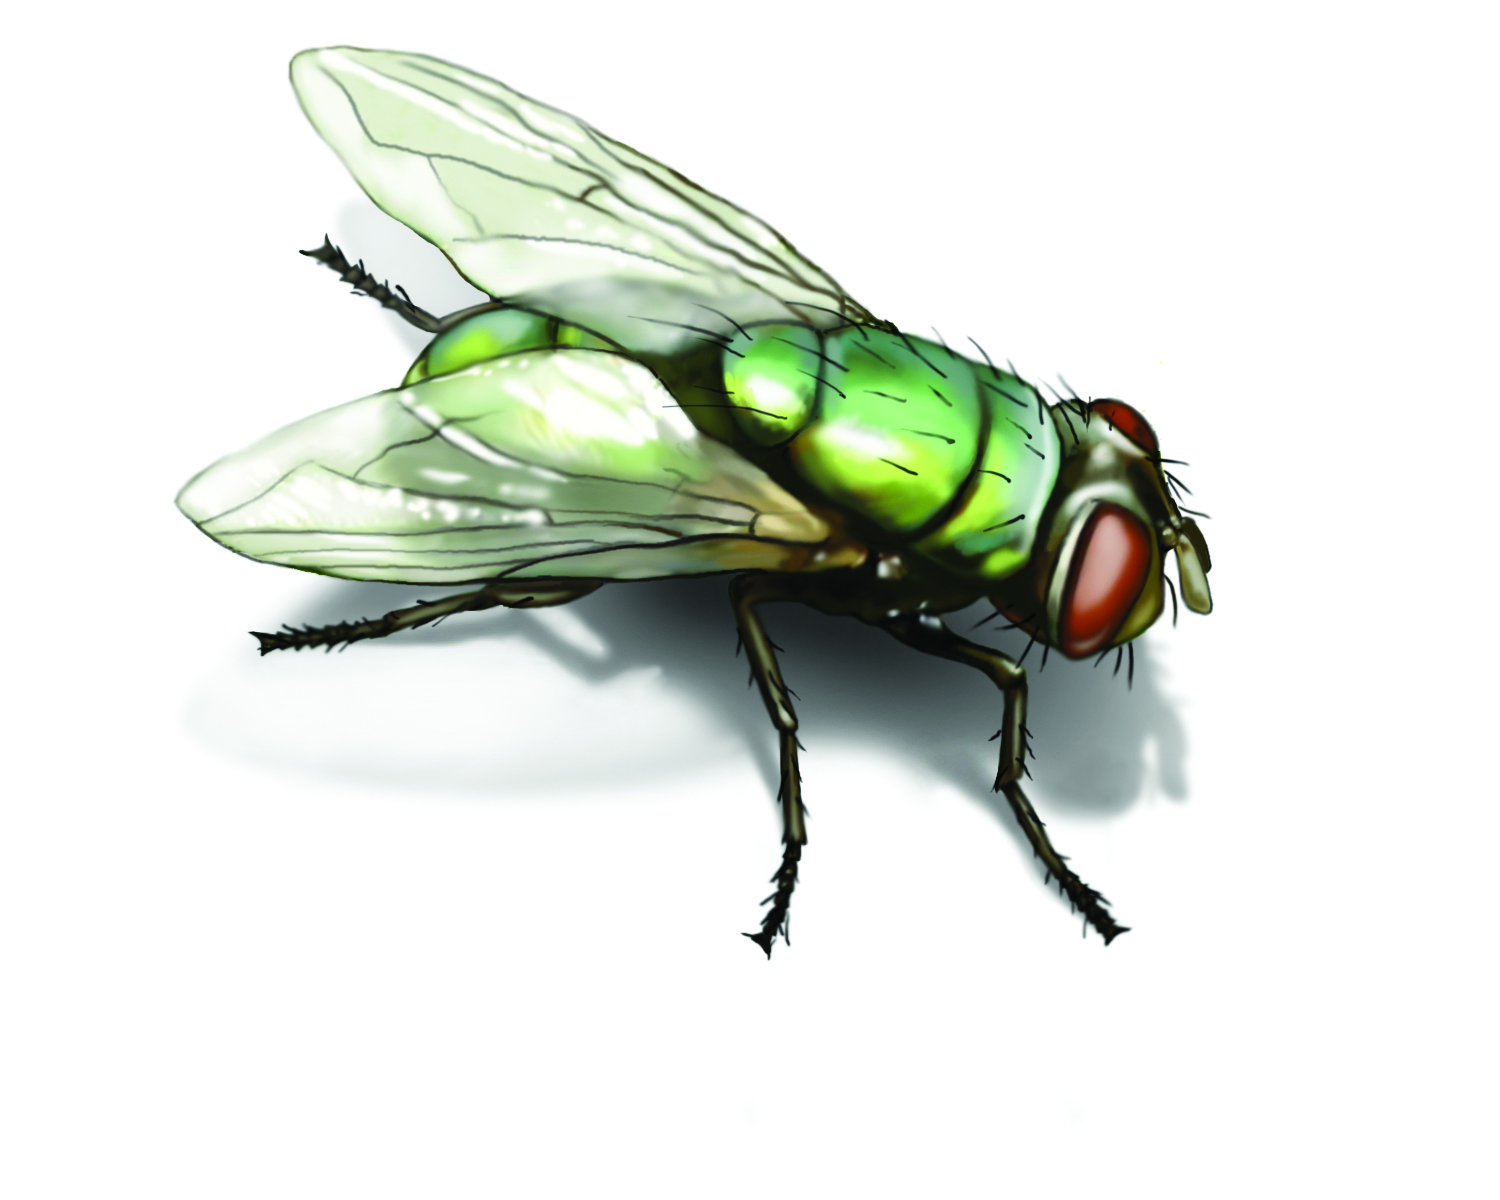 Tiny Green Bugs That Bite Green Bottle Fly: Get Rid Of Green Bottle Flies In House